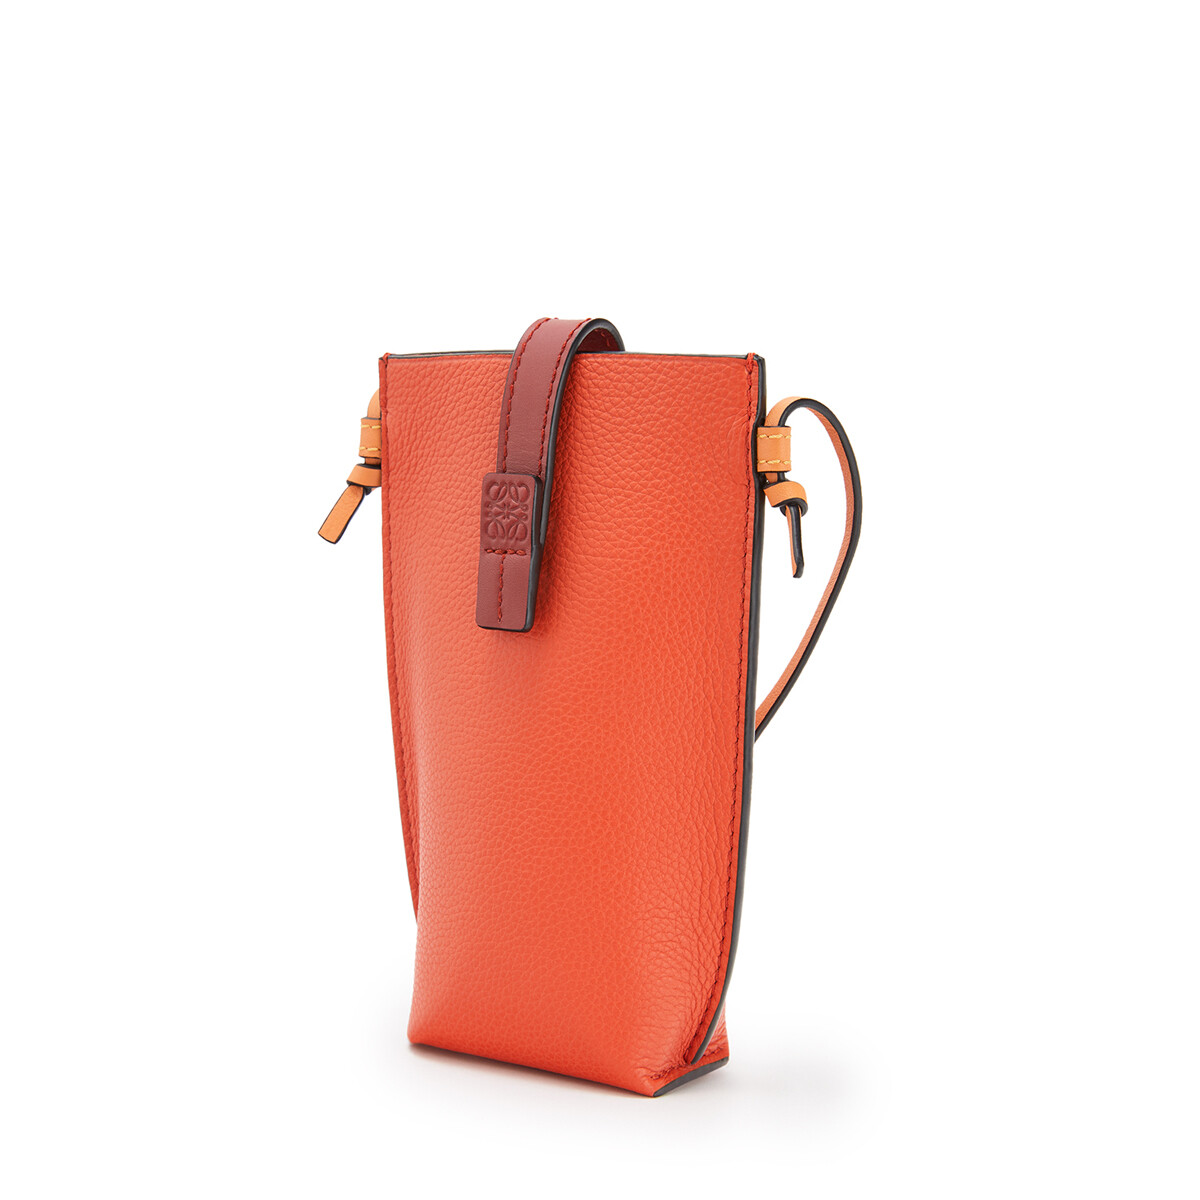 LOEWE 口袋 Coral/Soft Apricot front